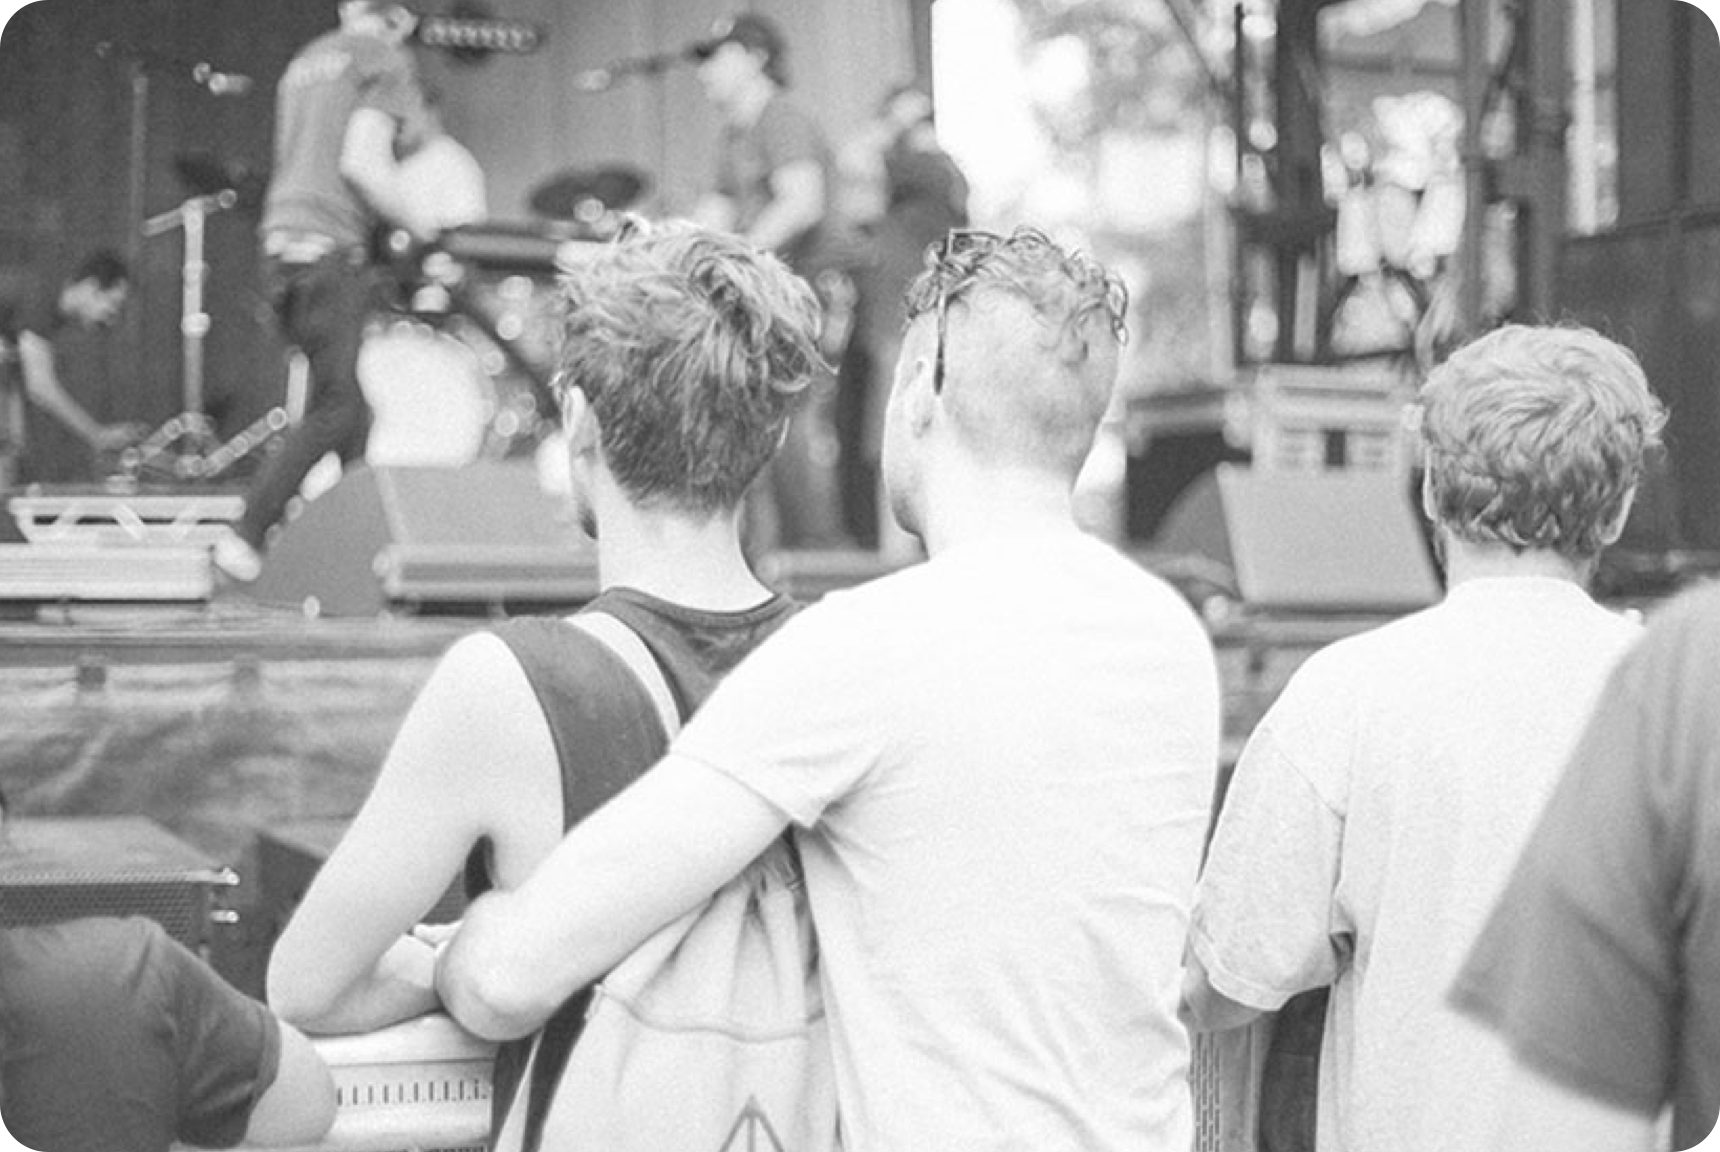 A man embracing another man while viewing  a stage